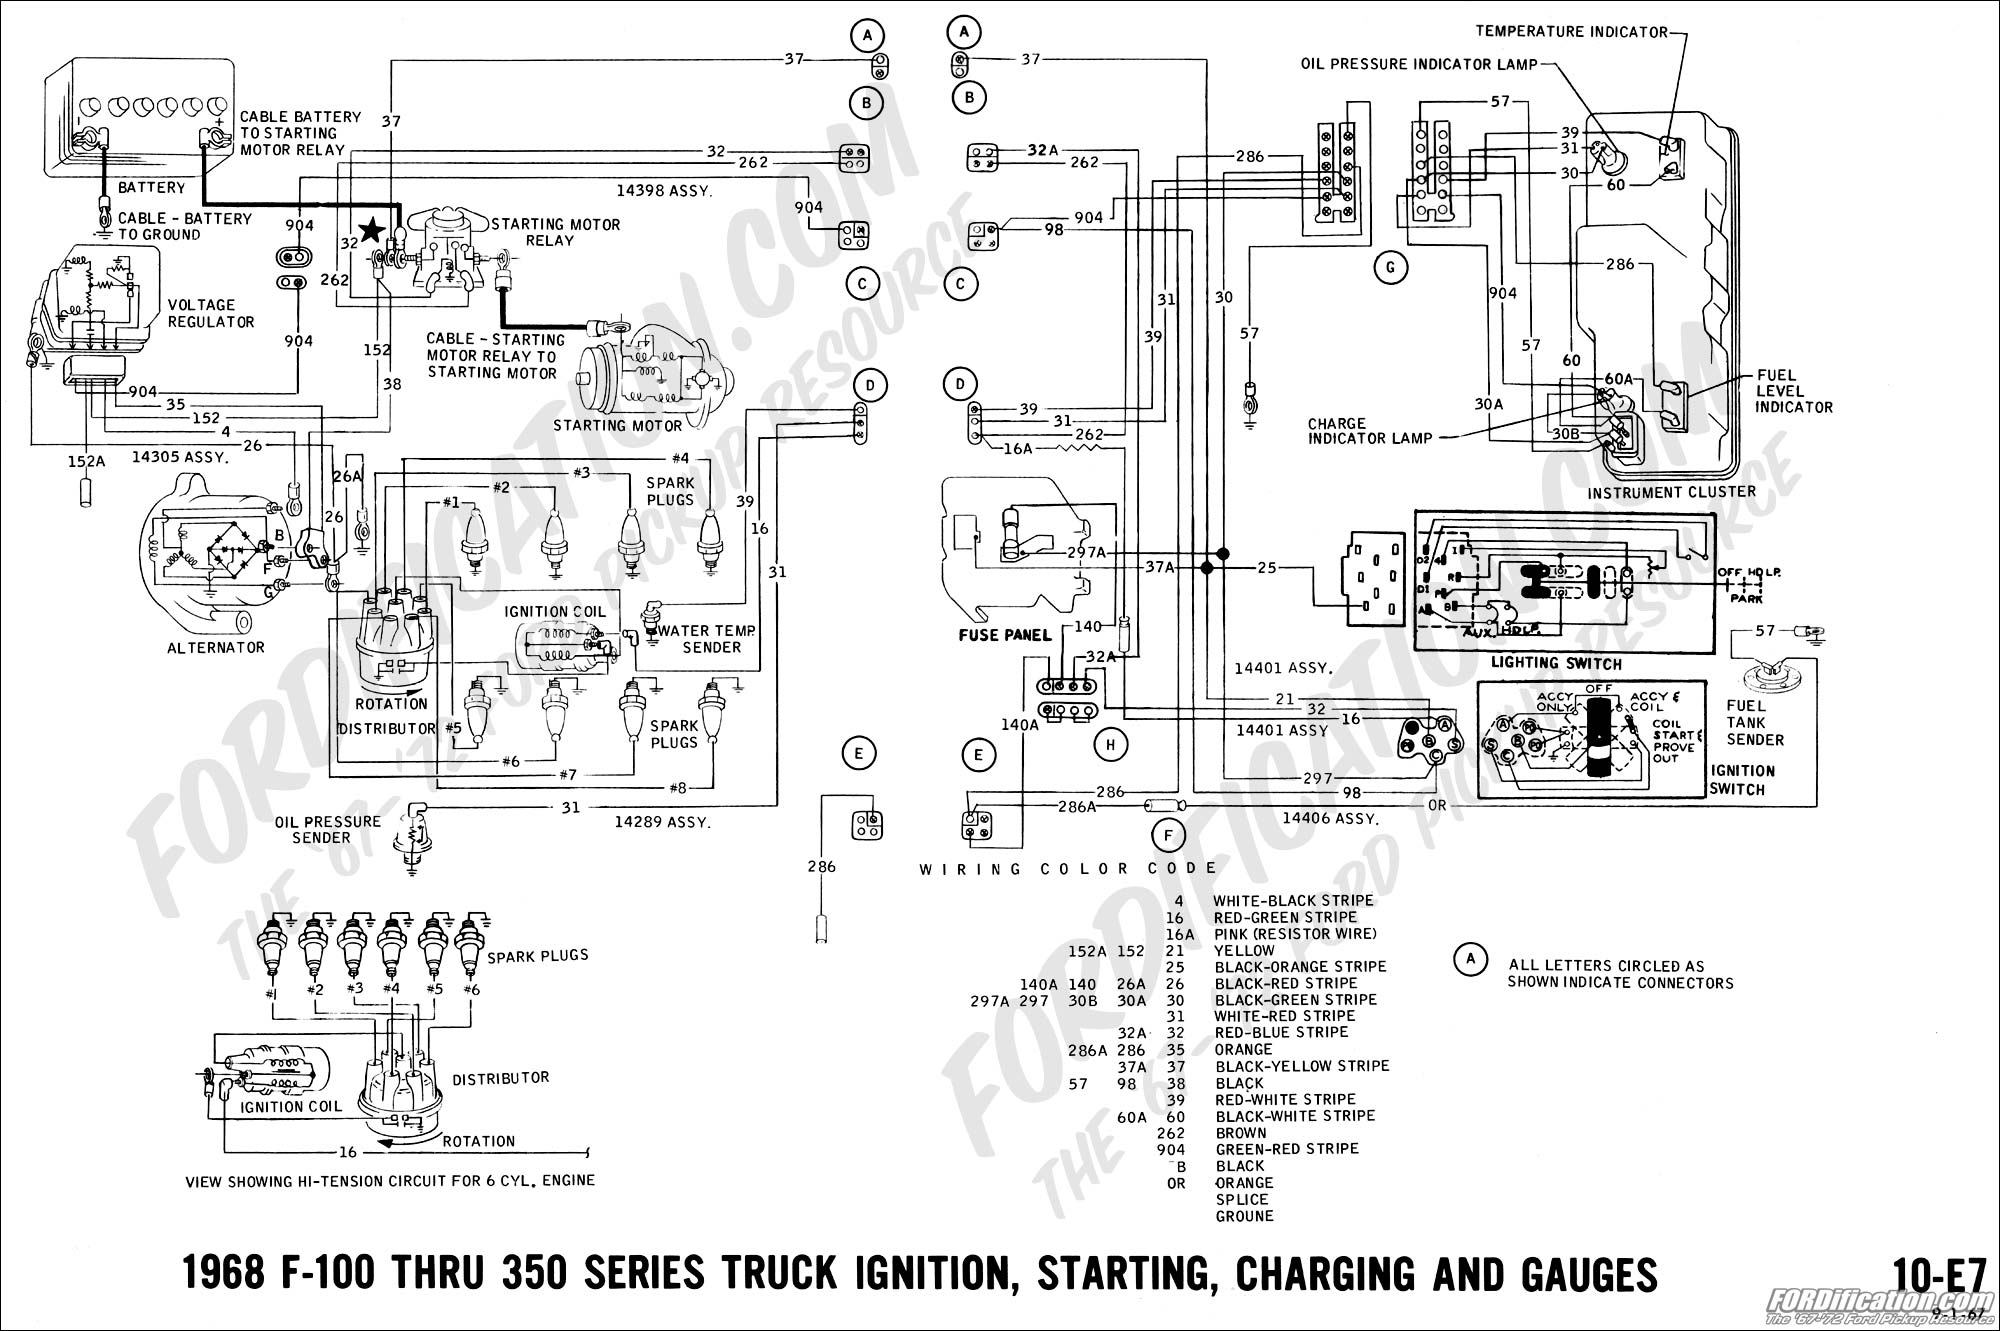 Ford Truck Technical Drawings and Schematics - Section H ... on horn wiring, fuel sending unit wiring, ignition switch wiring, 6 volt generator wiring, tail light wiring,